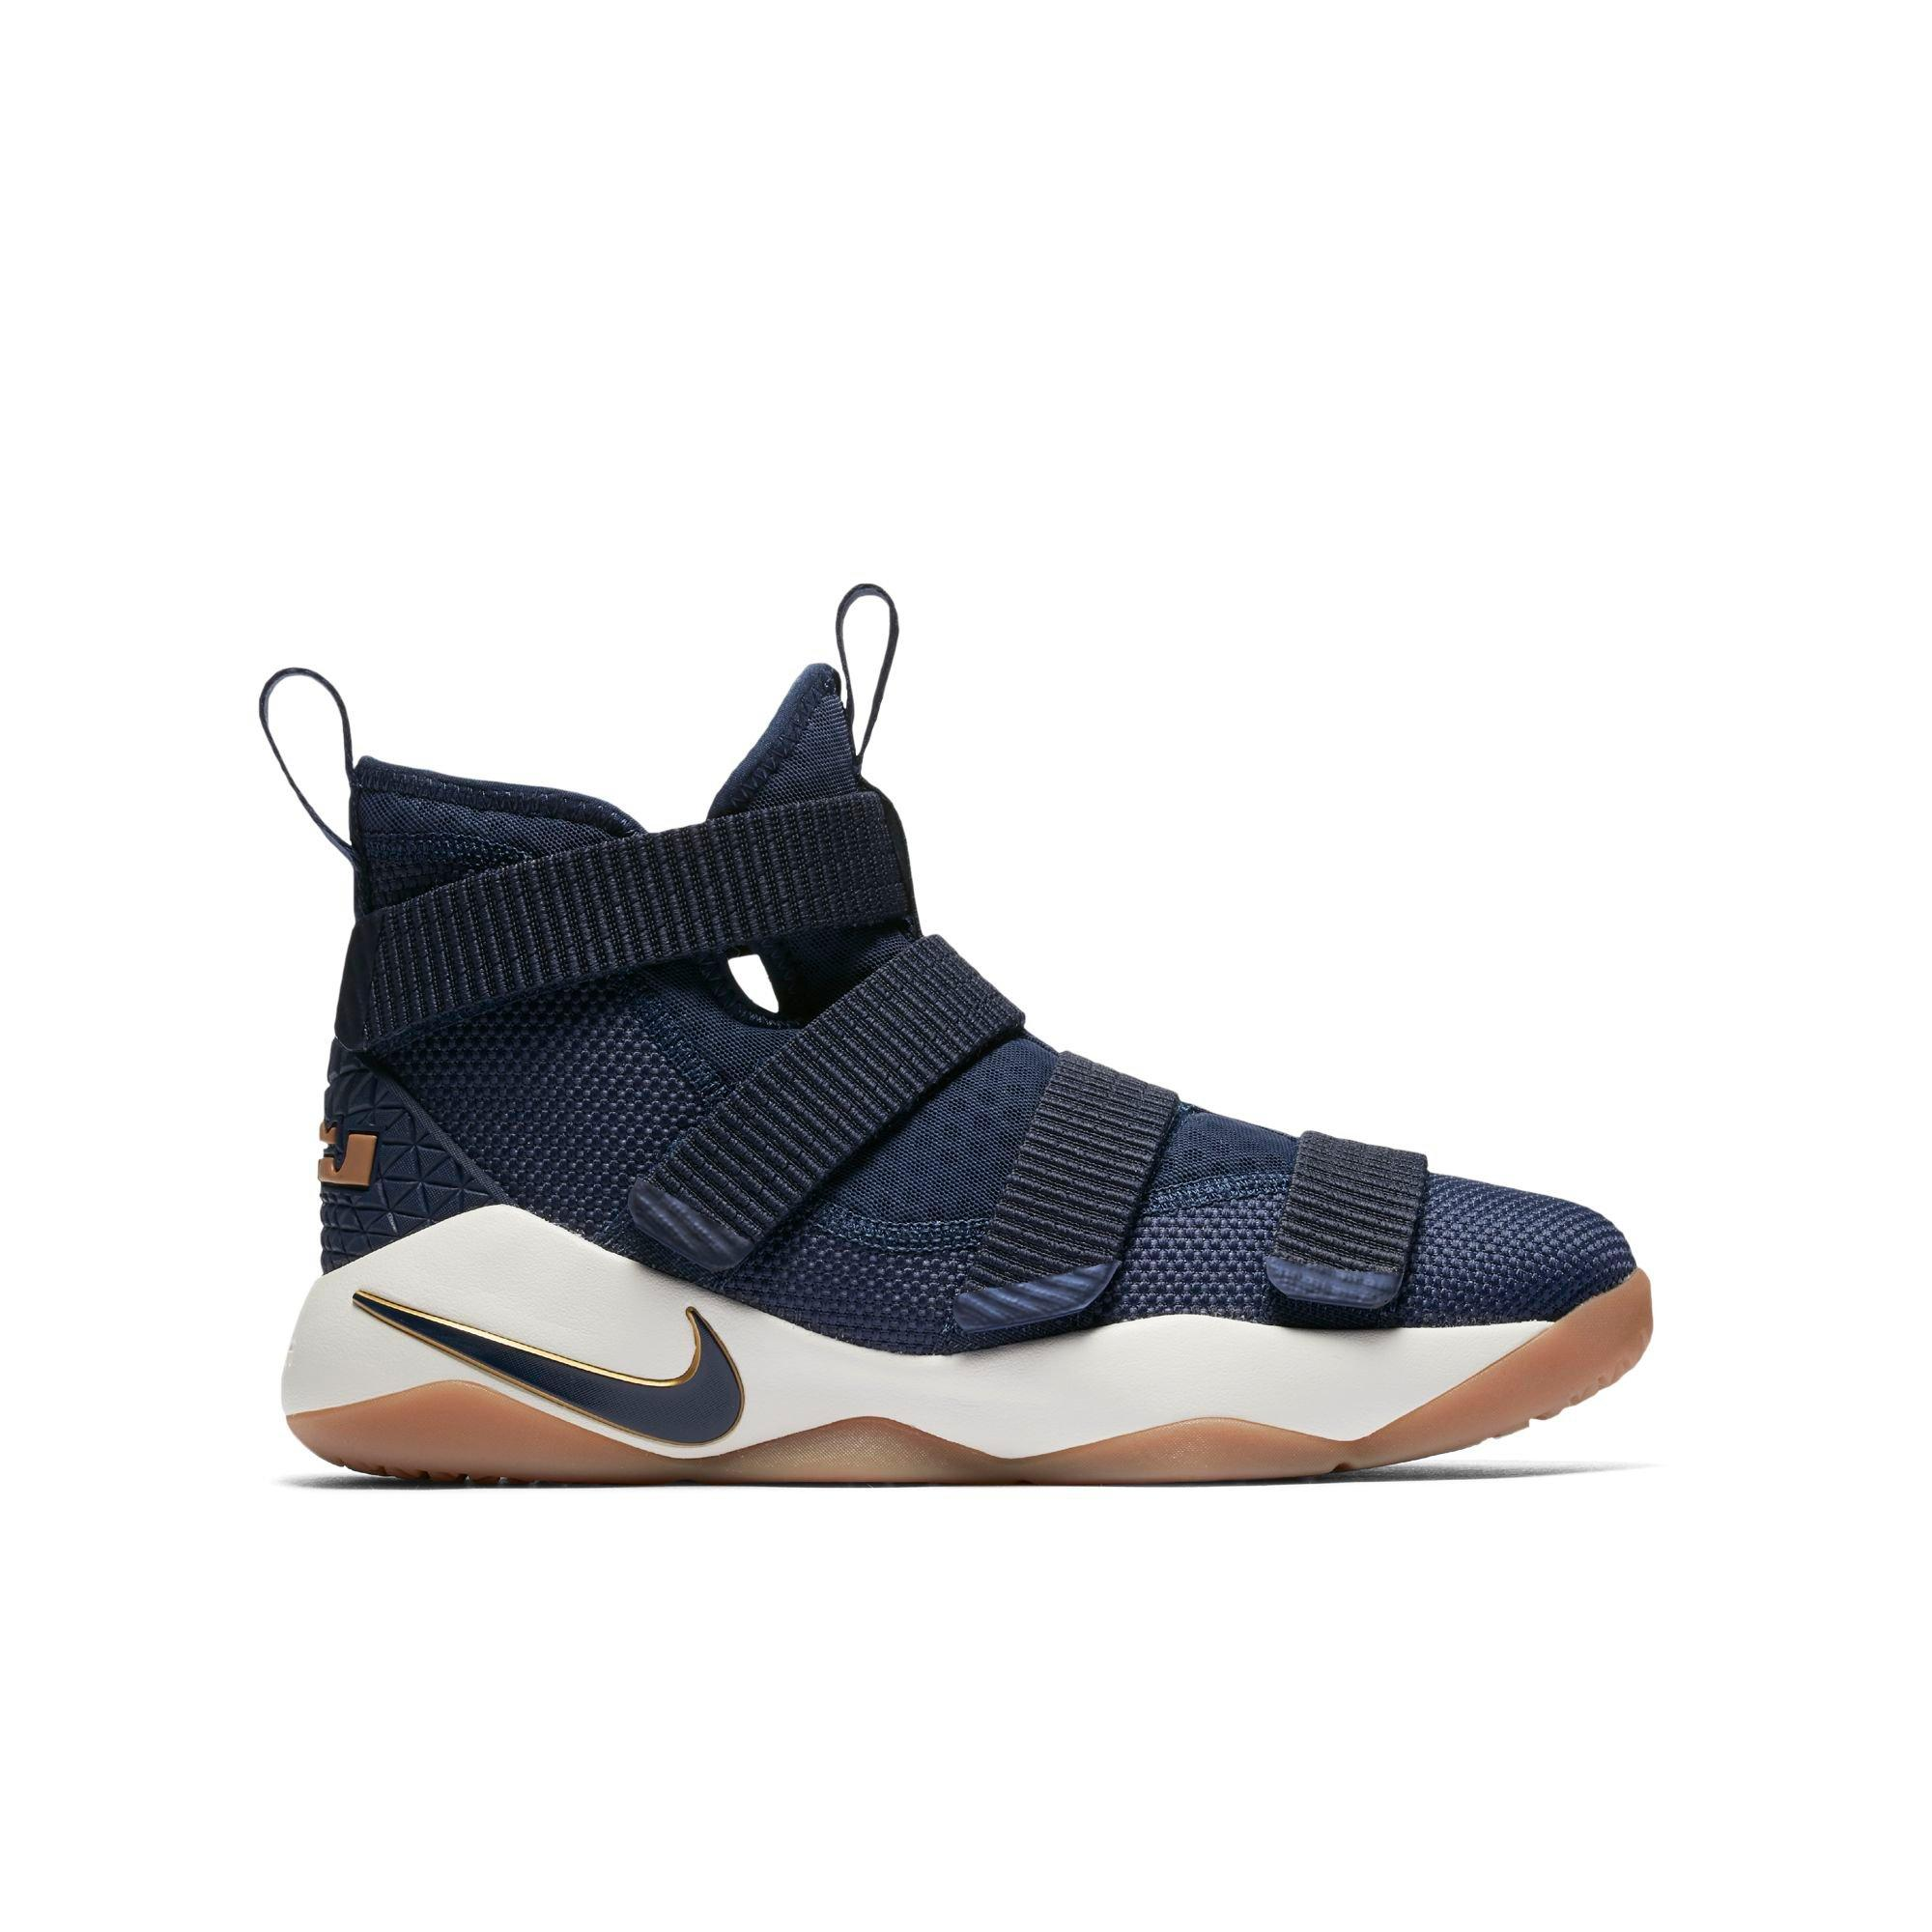 Free Shipping No Minimum. 4 out of 5 stars. Read reviews. (1). Nike Lebron  ...